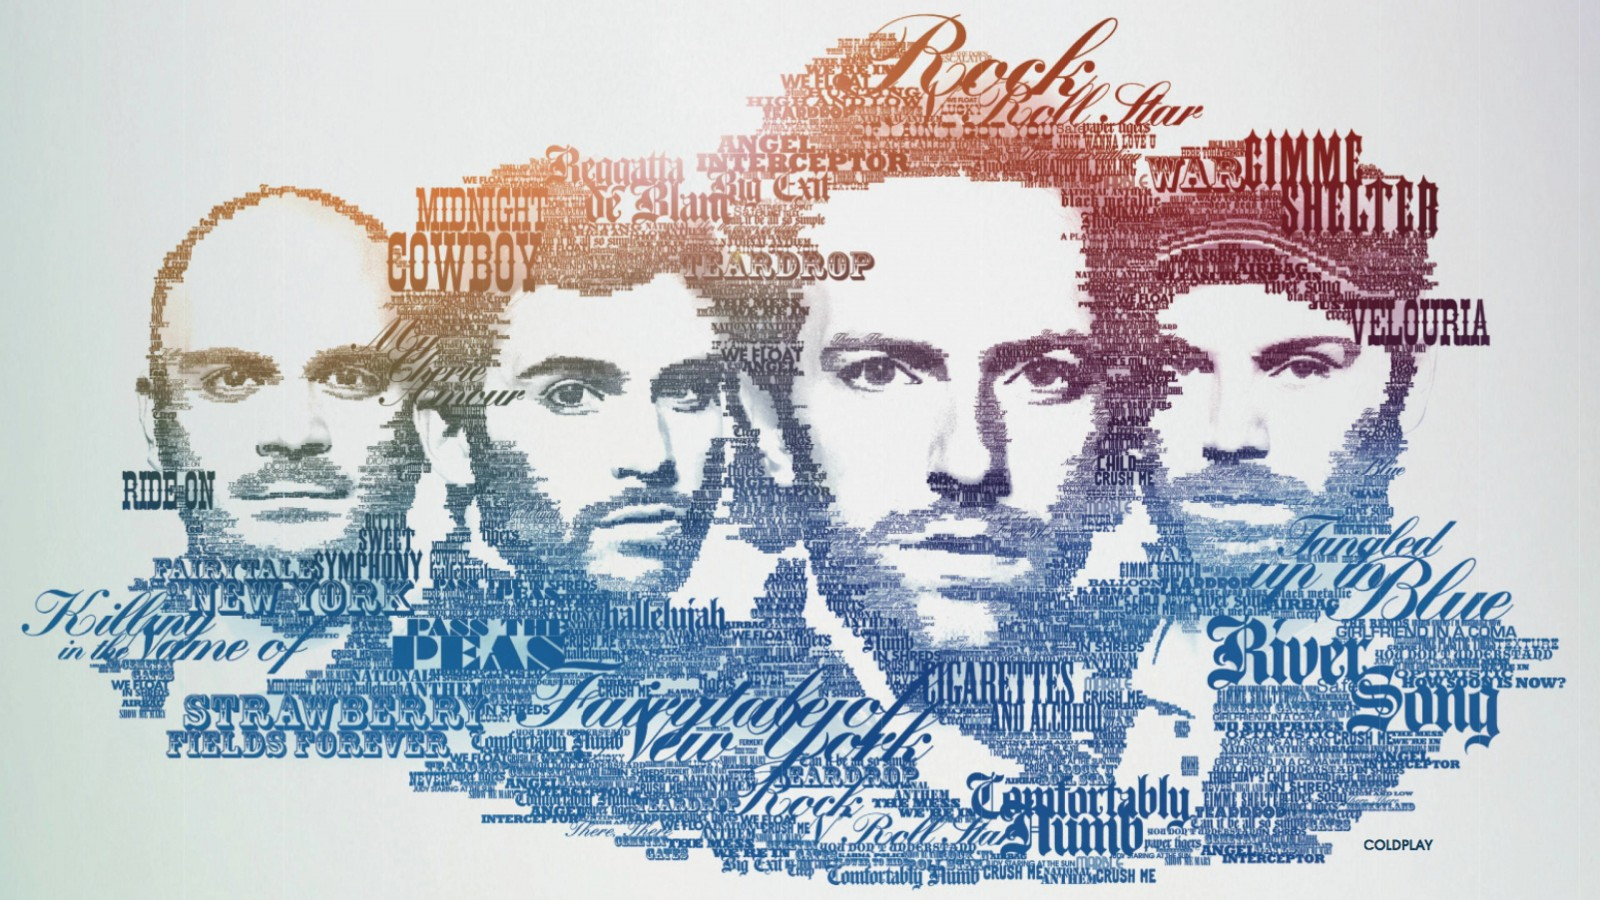 Coldplay Typographic Portrait Wallpaper for Desktop 1600x900